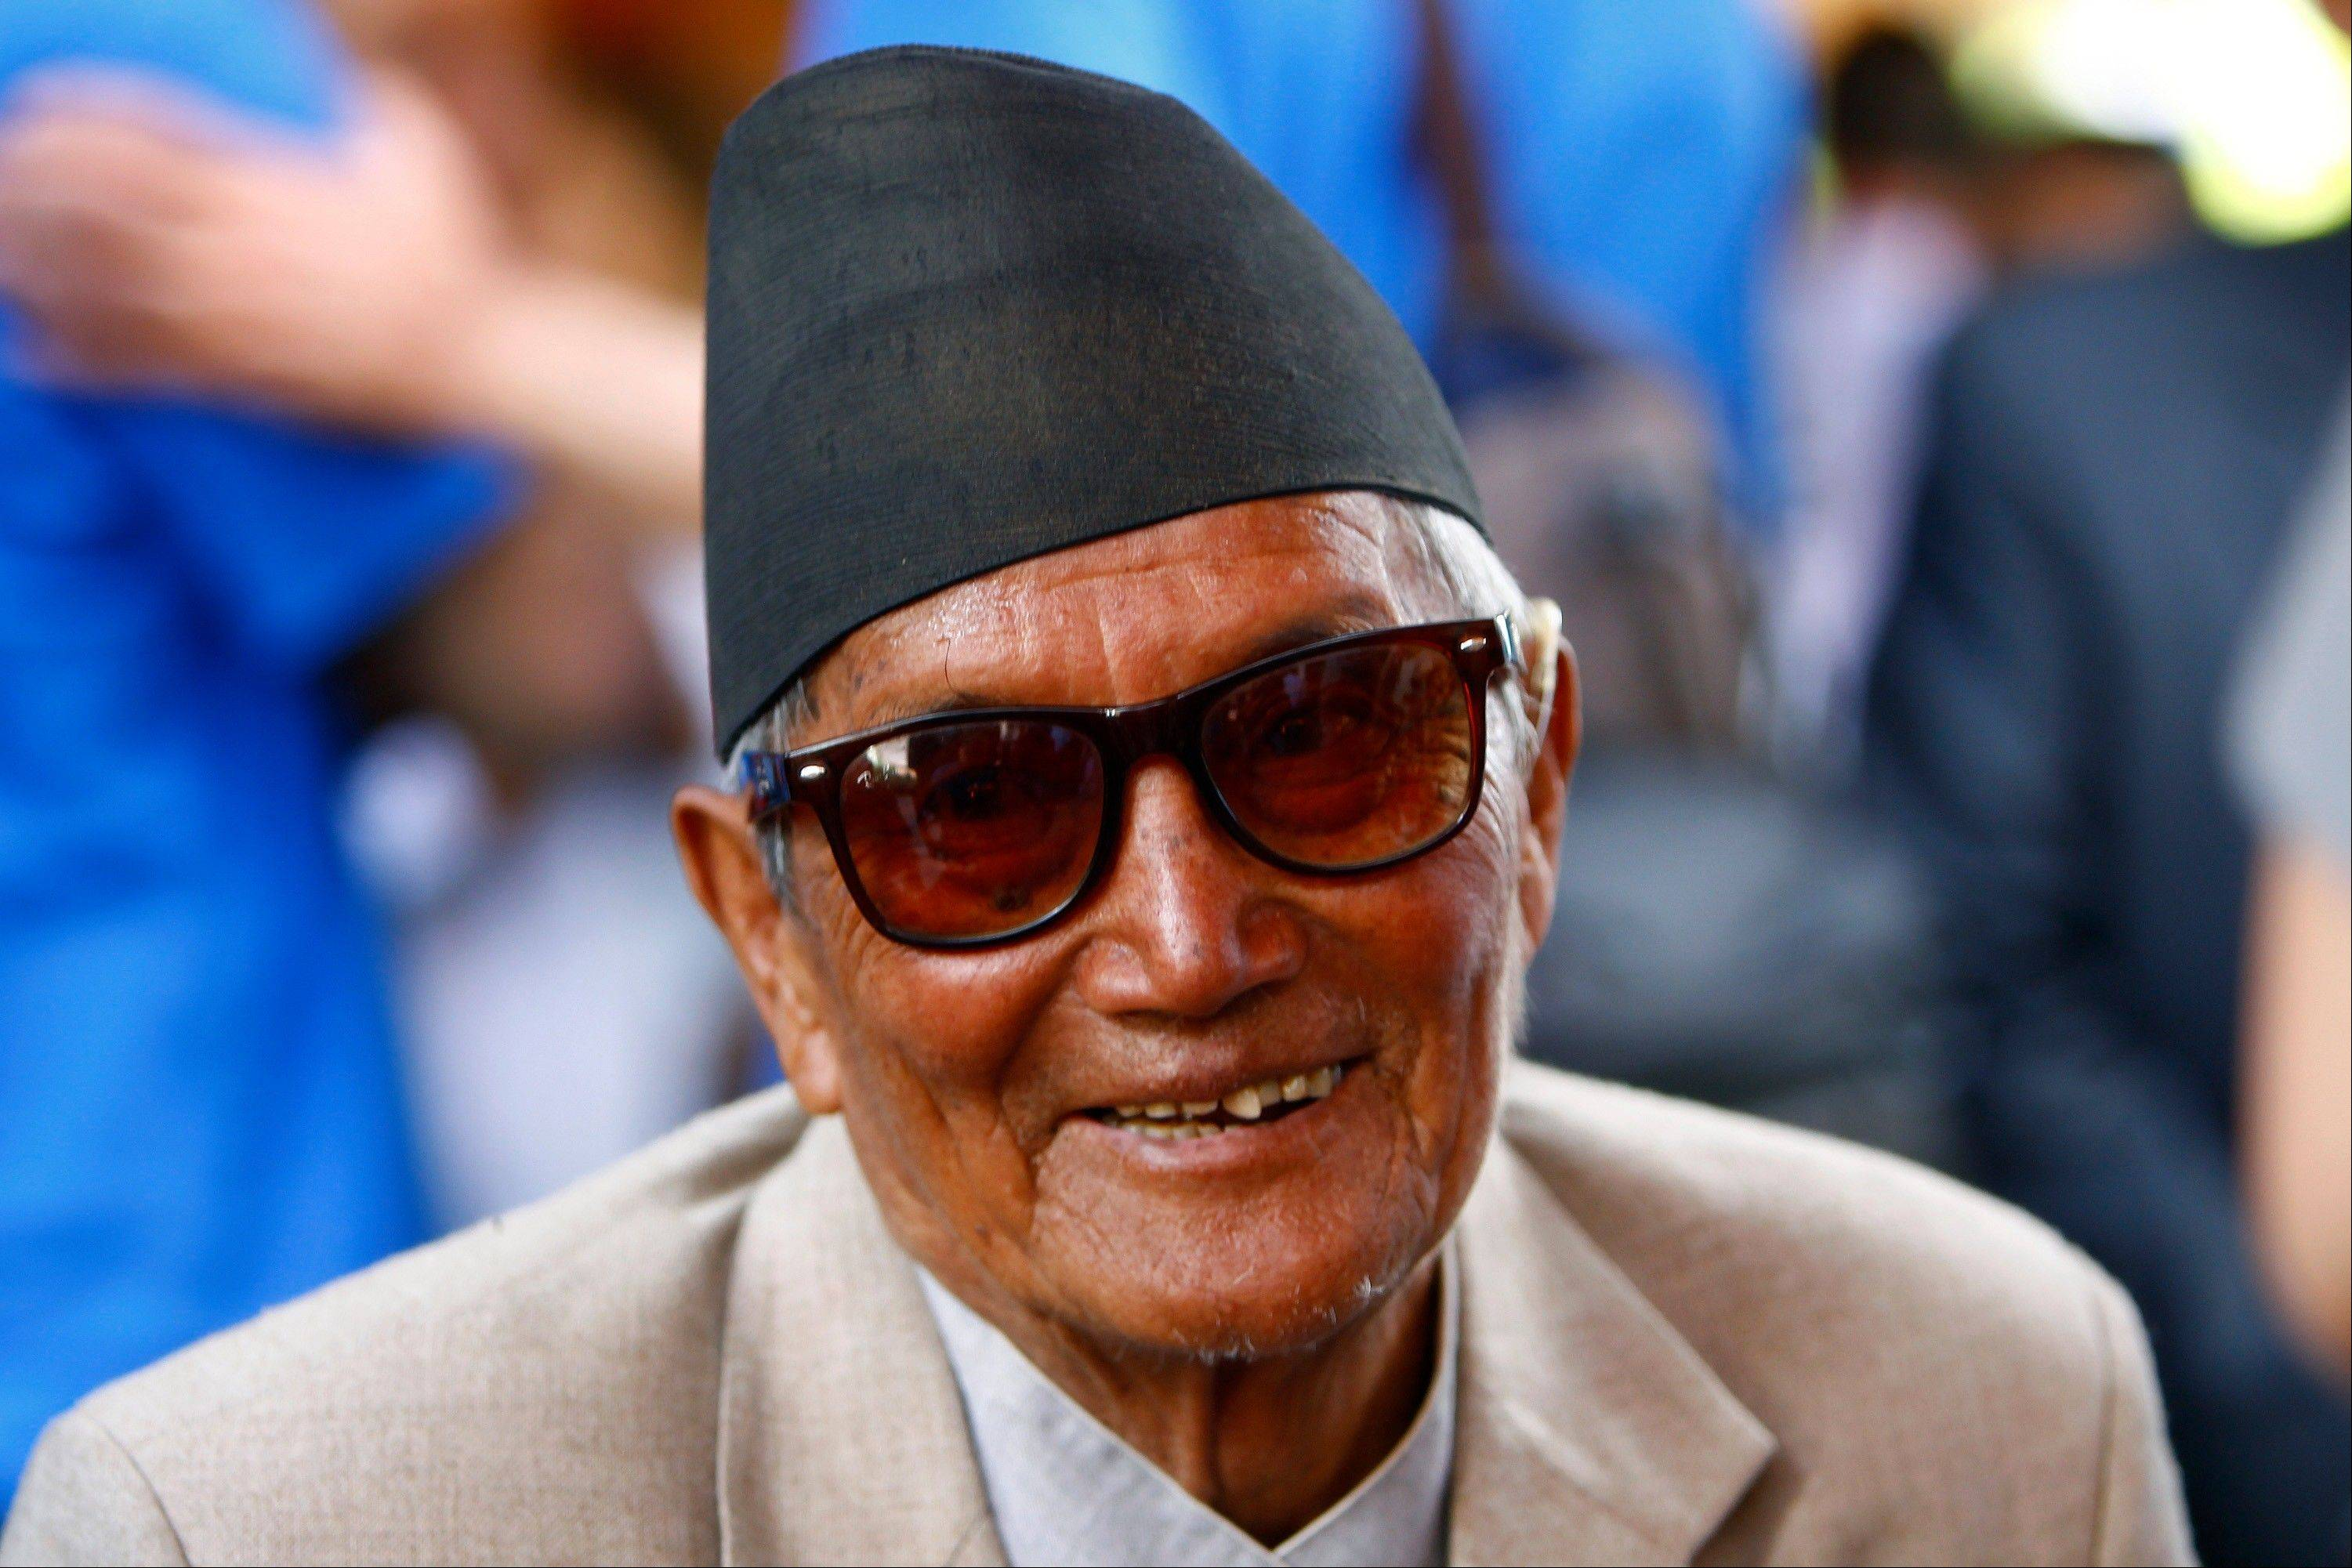 Nepalese mountaineer Min Bahadur Sherchan, 81, participates in a function to mark the 60th anniversary of the successful ascent of Mount Everest at the British Embassy, in Katmandu, Nepal, Wednesday, May 29, 2013. Sherchan had held the record for the oldest person to scale the world's highest mountain until 80-year-old Japanese climber Yuichiro Miura conquered the 8,850-meter (29,035-foot) peak last week.